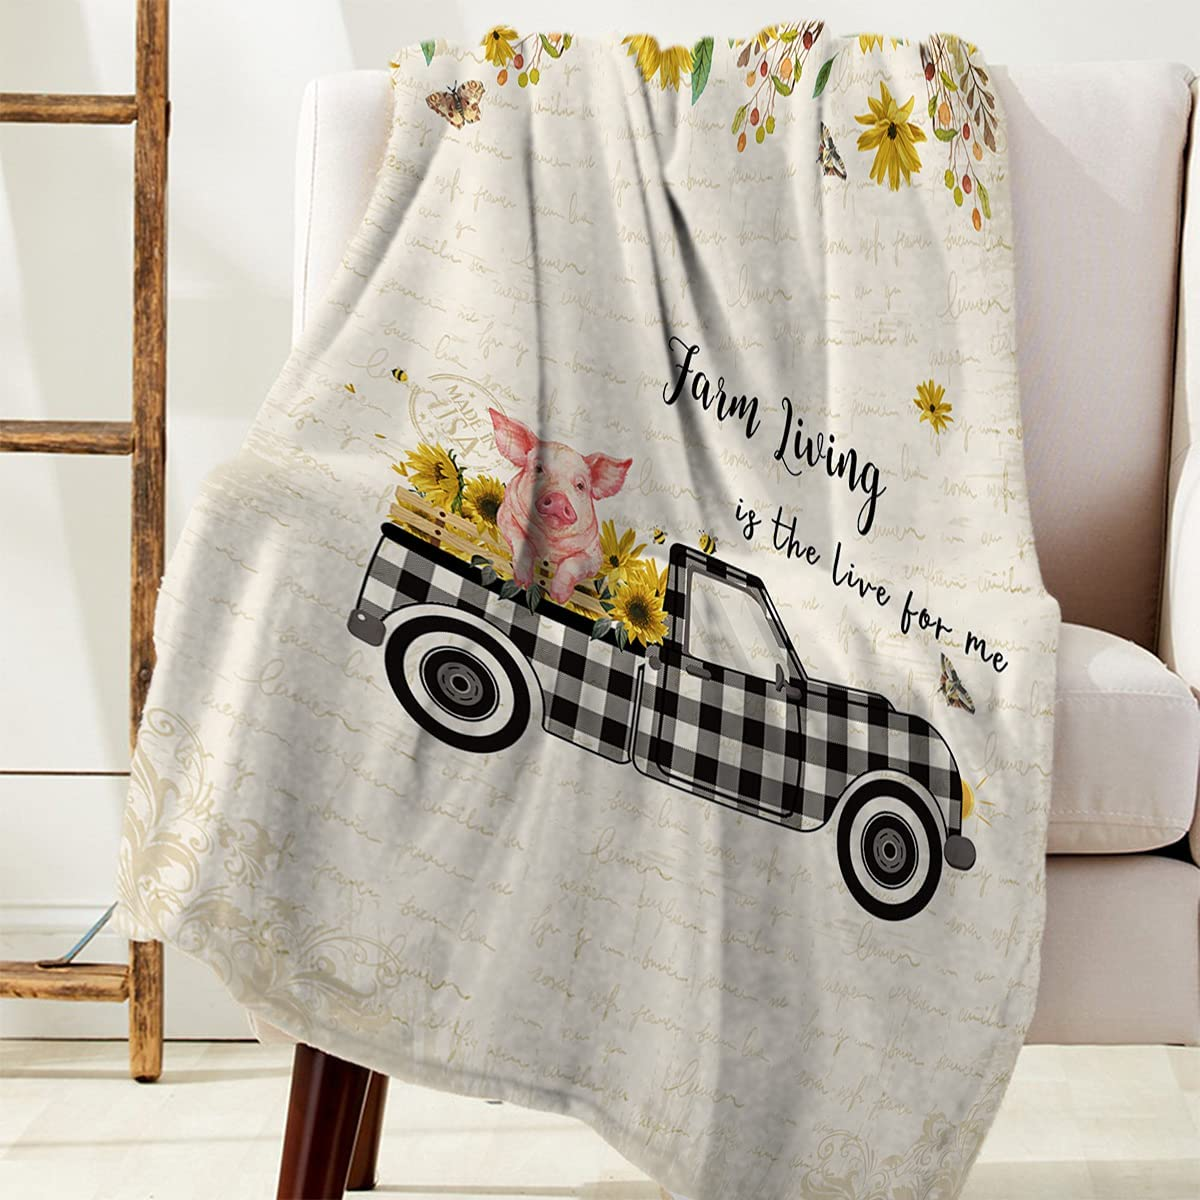 Fuzzy Fleece Blanket Throw for All Now free shipping Season Couch Luxury Selling rankings